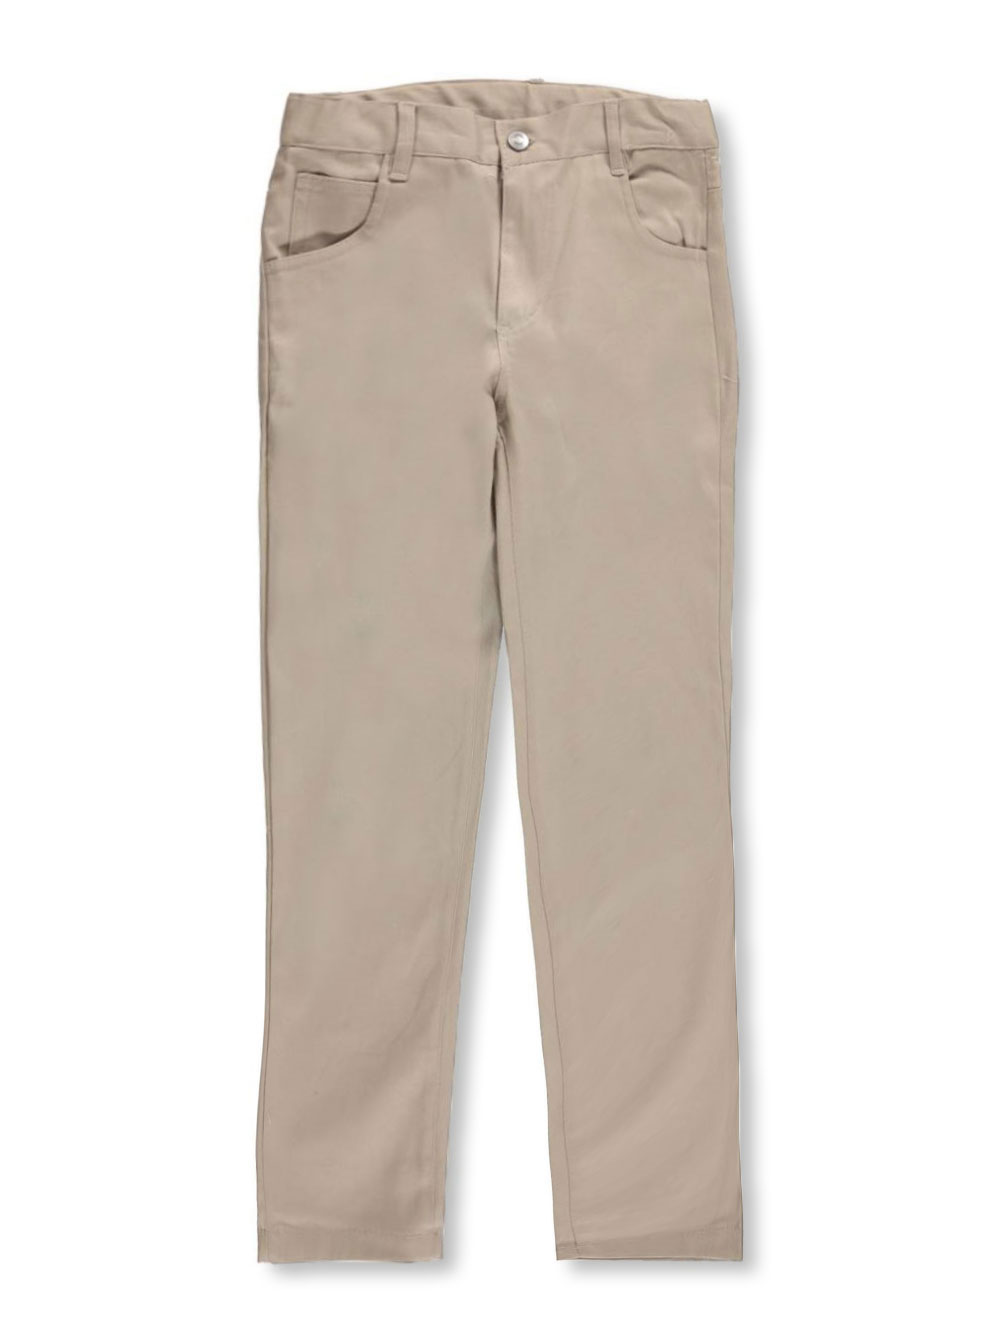 Image of Denice Stretch Little Girls Jean Pocket Skinny Uniform Pants Sizes 4  6X  khaki 4